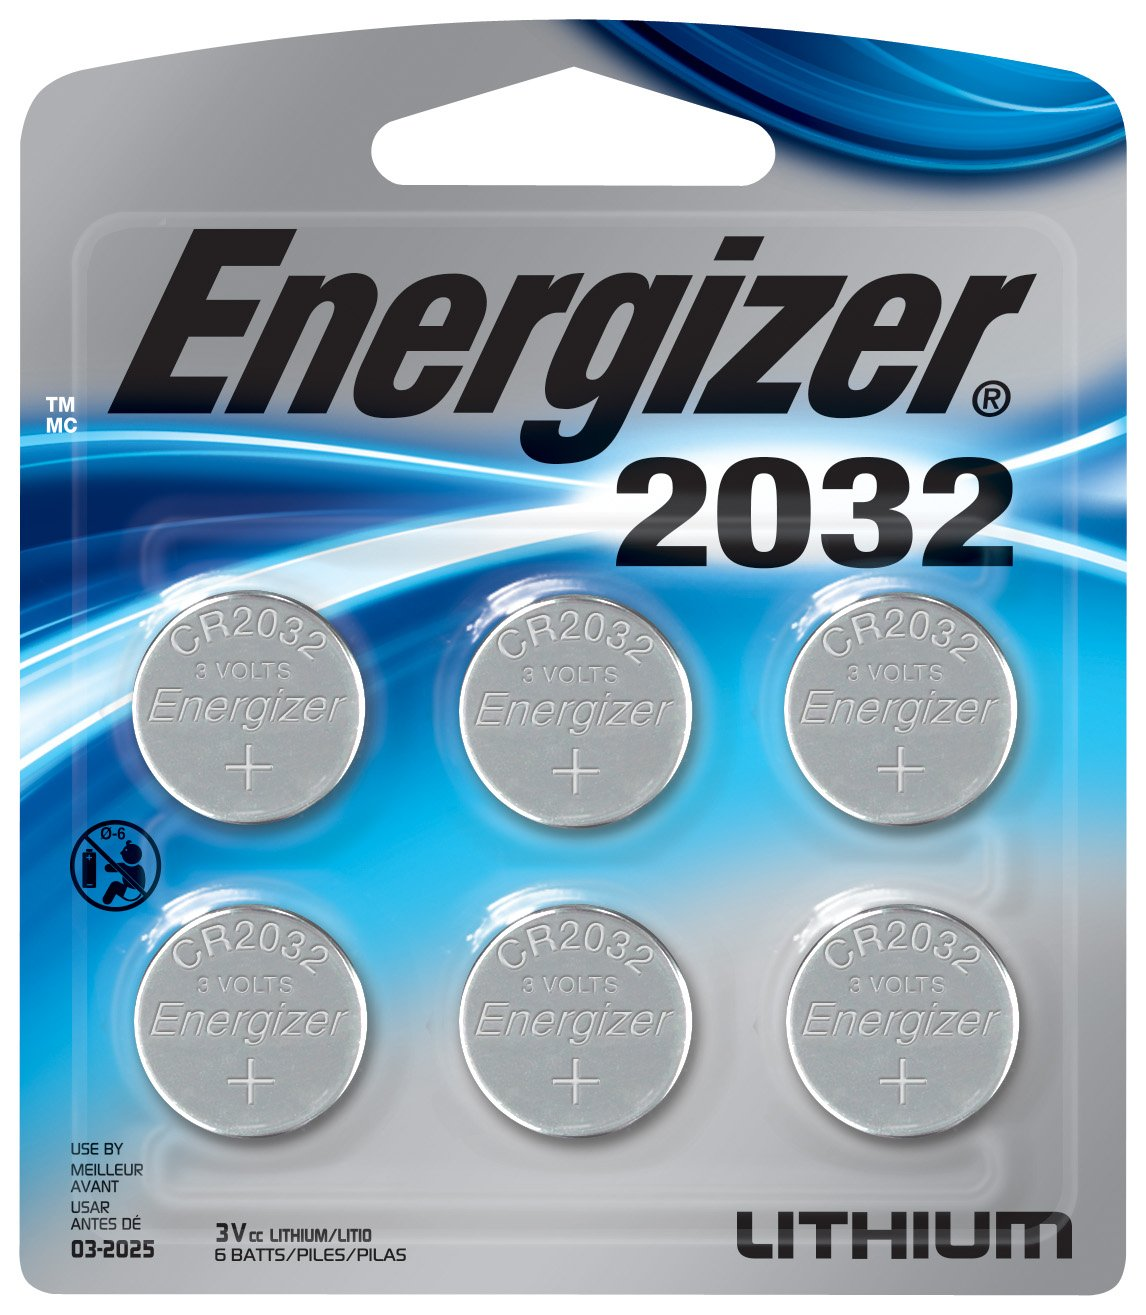 Energizer 2032BP-6 Energizer Lithium 2032 Battery, 6 Count, 0.02 kg Energizer Batteries- Consumables